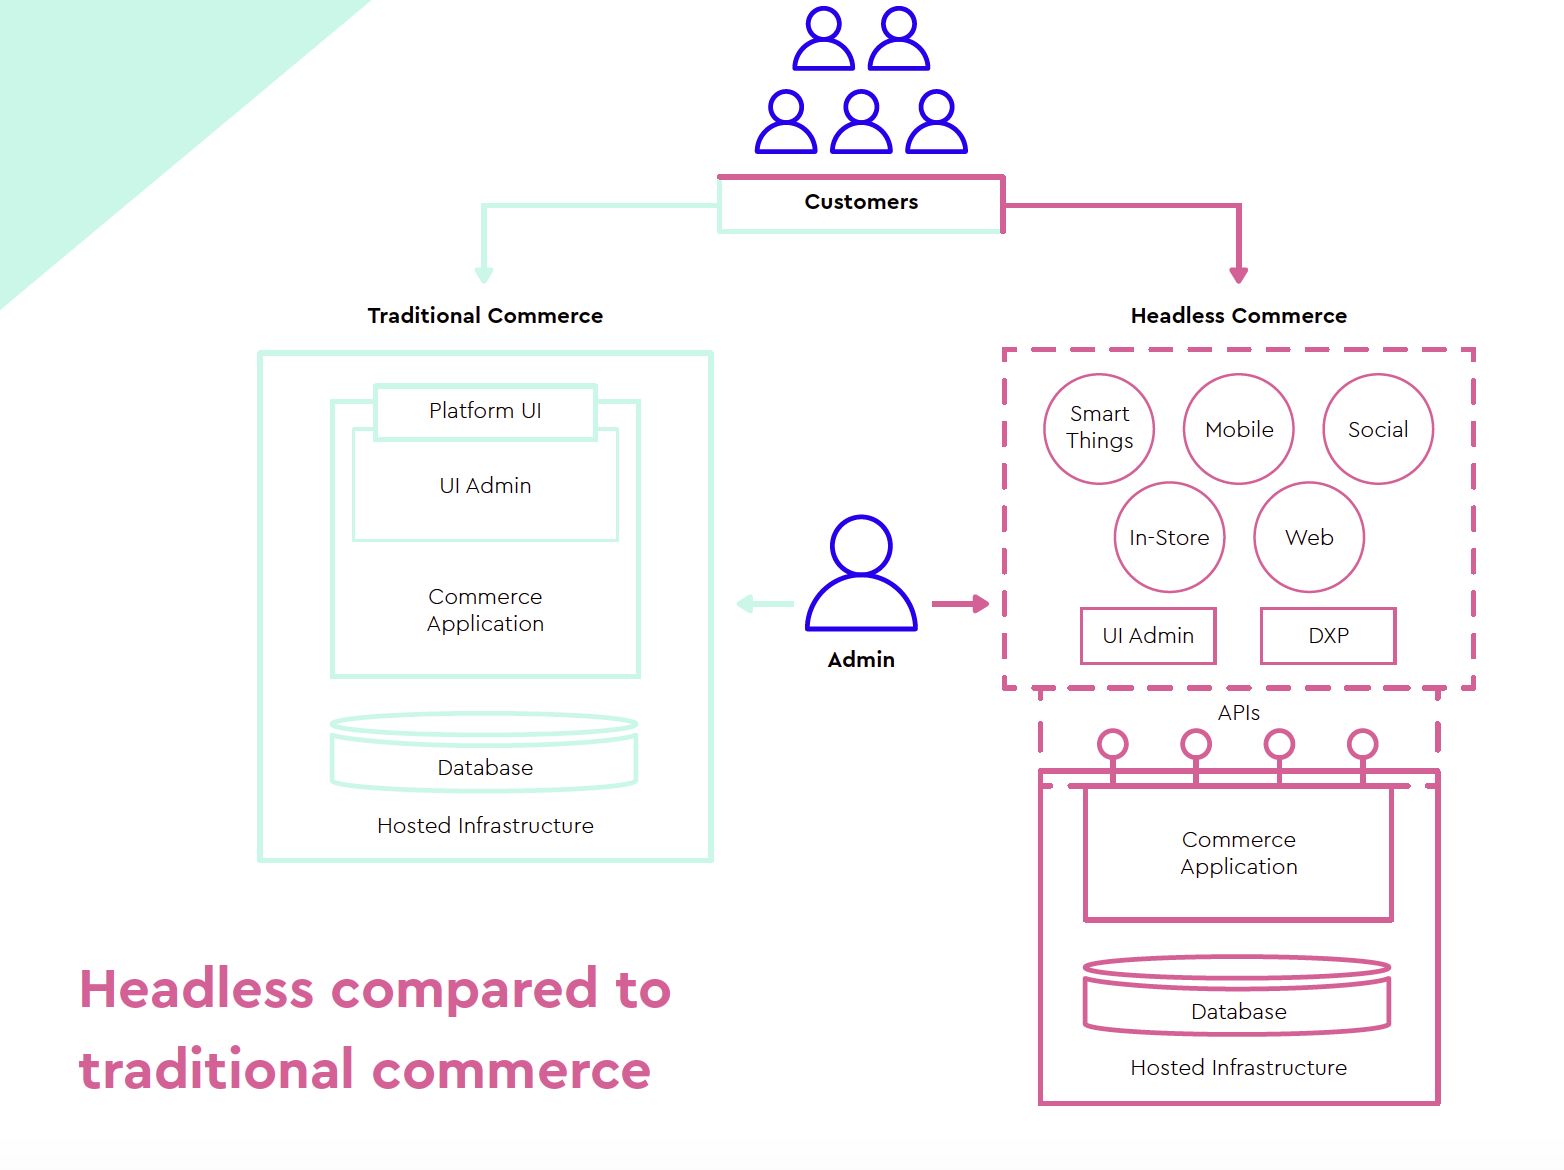 Headless compared to traditional commerce